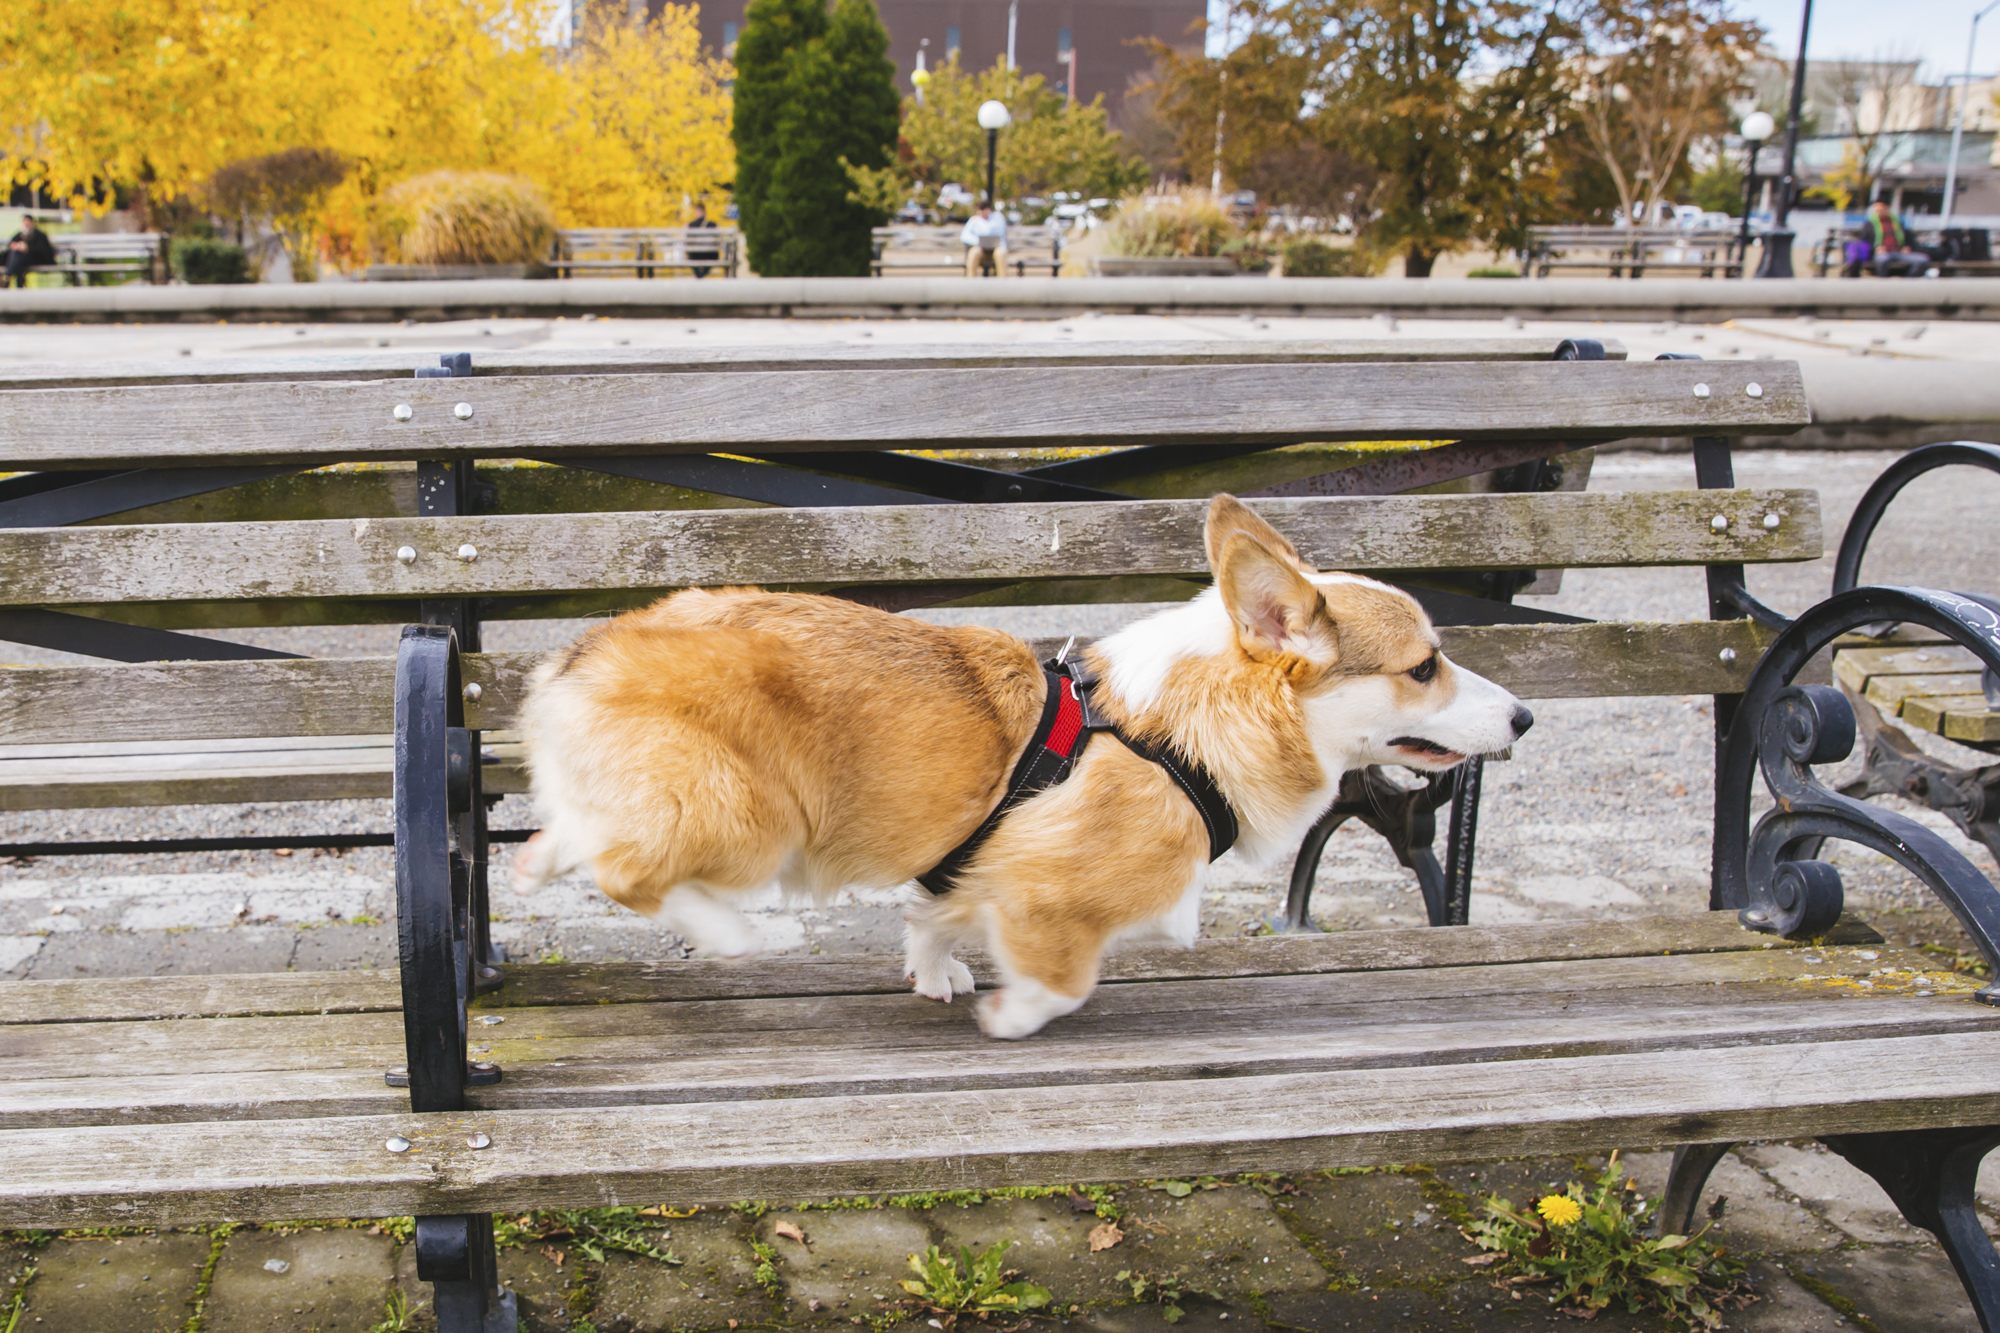 This week we have nine-month-old Bobo the Pembroke Welsh Corgi as our RUFFined Spotlight. Bobo is a low rider who is full of nonstop energy! Don't let his mini legs fool you, they don't stop him from being an active bubba. He is a lover of anyone or anything and his parents call him a pure loving soul ready to take on the world. Bobo likes any toy with a squeaky noise, treats and kisses. He dislikes{ } the doorbell as it is his worst enemy. You can follow Bobo's journey through life @bobothecorgs.{ }The Seattle RUFFined Spotlight is a weekly profile of local pets living and loving life in the PNW. If you or someone you know has a pet you'd like featured, email us at hello@seattlerefined.com or tag #SeattleRUFFined and your furbaby could be the next spotlighted! (Image: Sunita Martini / Seattle Refined).